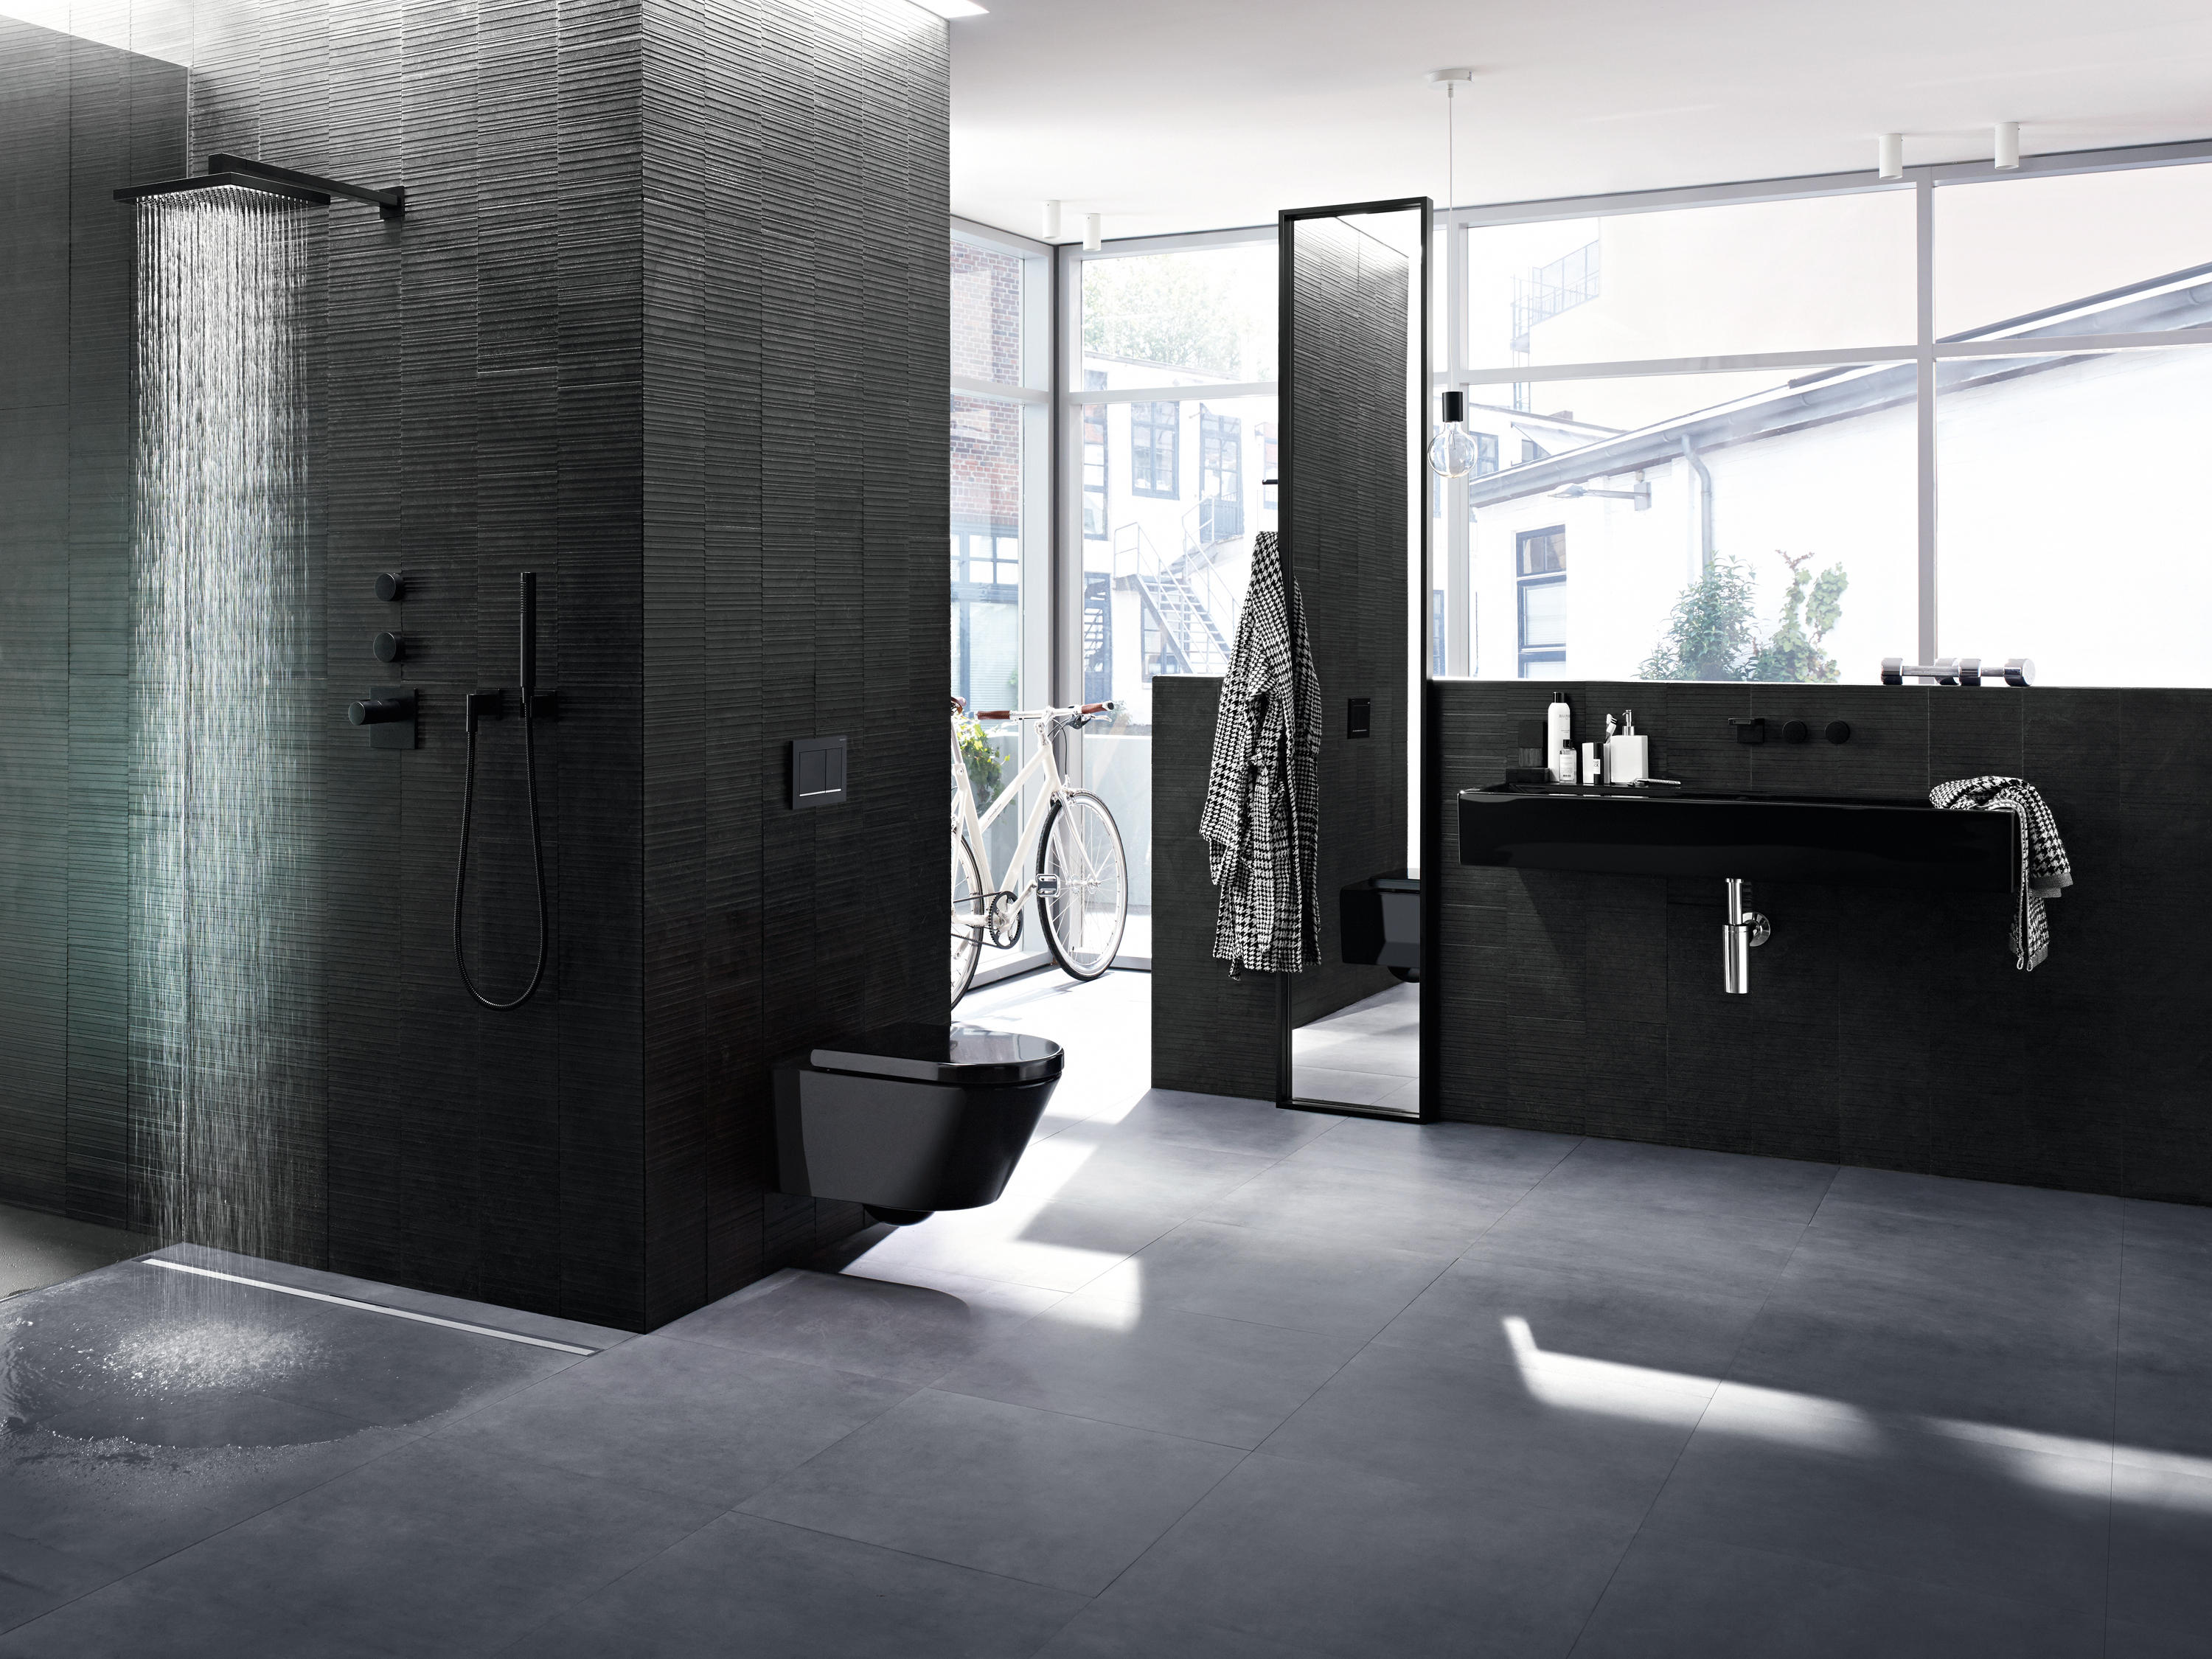 Geberit shower channels cleanline scarichi doccia geberit architonic